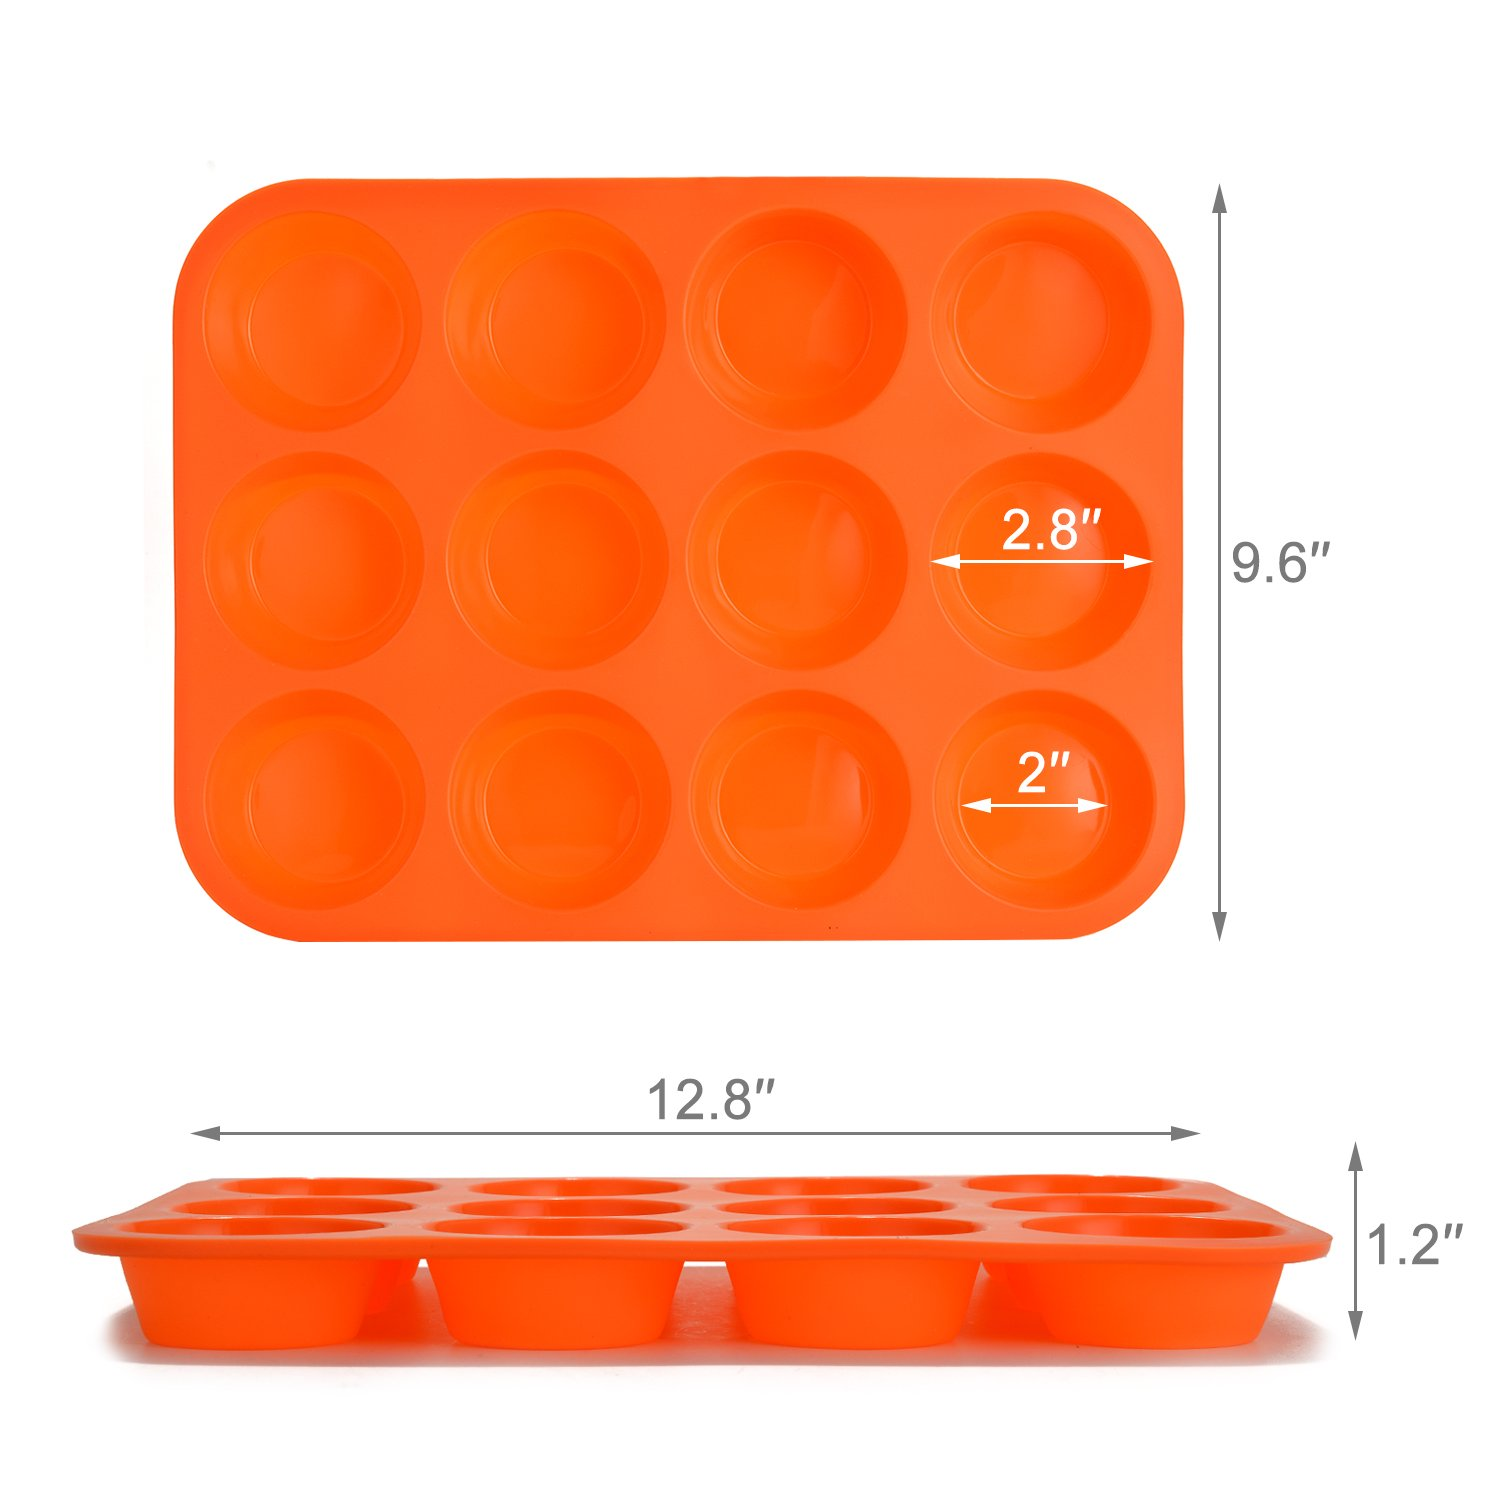 FITNATE Bakeware Silicone Muffin Pan 12 Cup, BPA-free, Non Stick by FITNATE (Image #5)